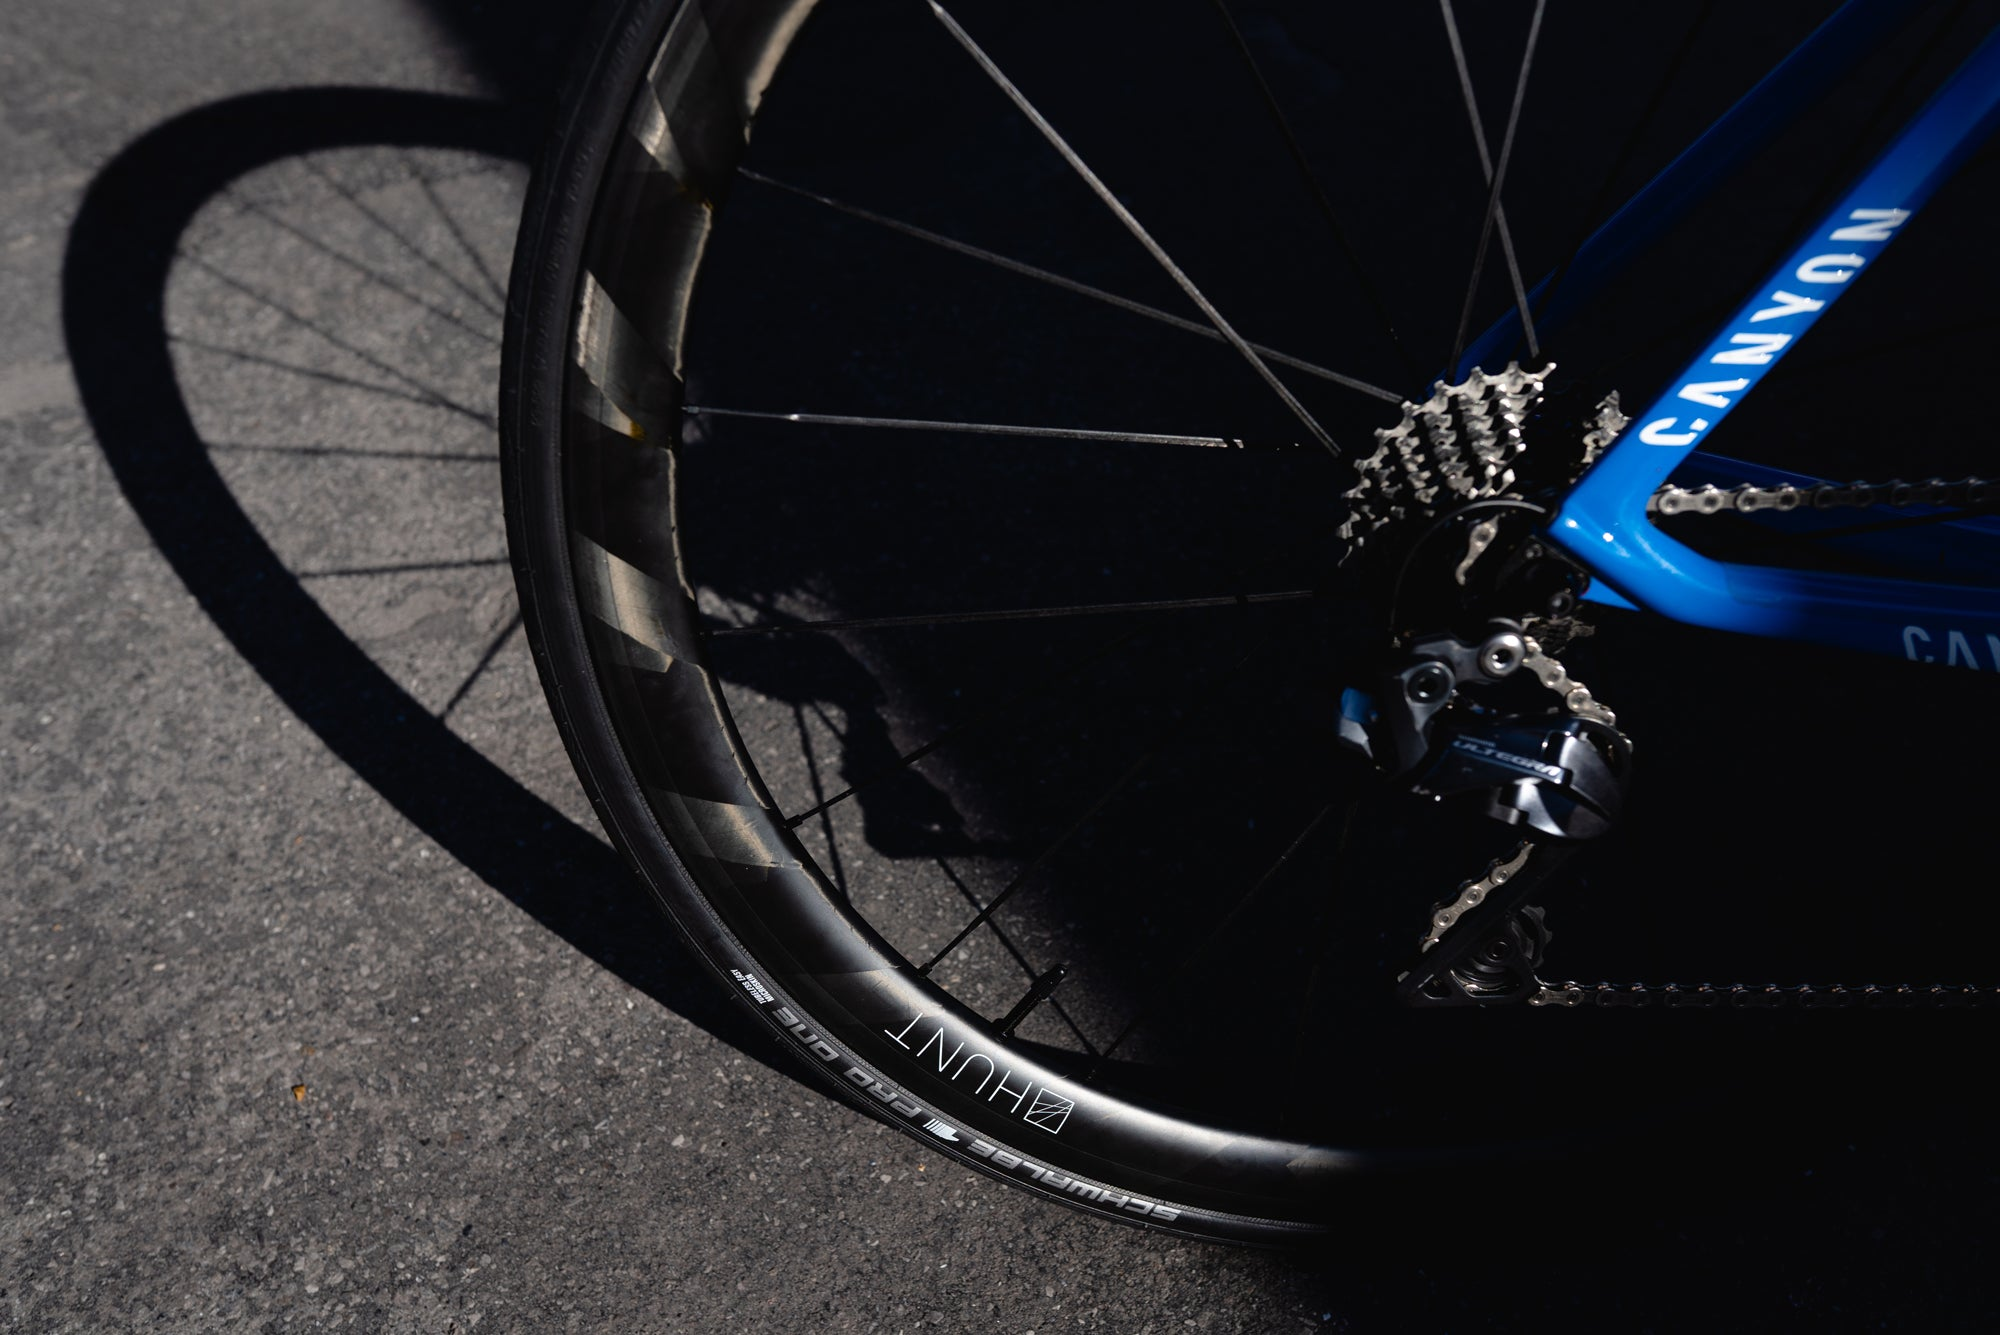 <h1>Tires</h1><i>At HUNT, we enjoy the puncture resistance and grip benefits of tubeless on our every-day rides so we wanted to allow our customers the same option. Of course, all of our tubeless-ready wheels are designed to work perfectly with clincher tires and inner tubes too.</i>